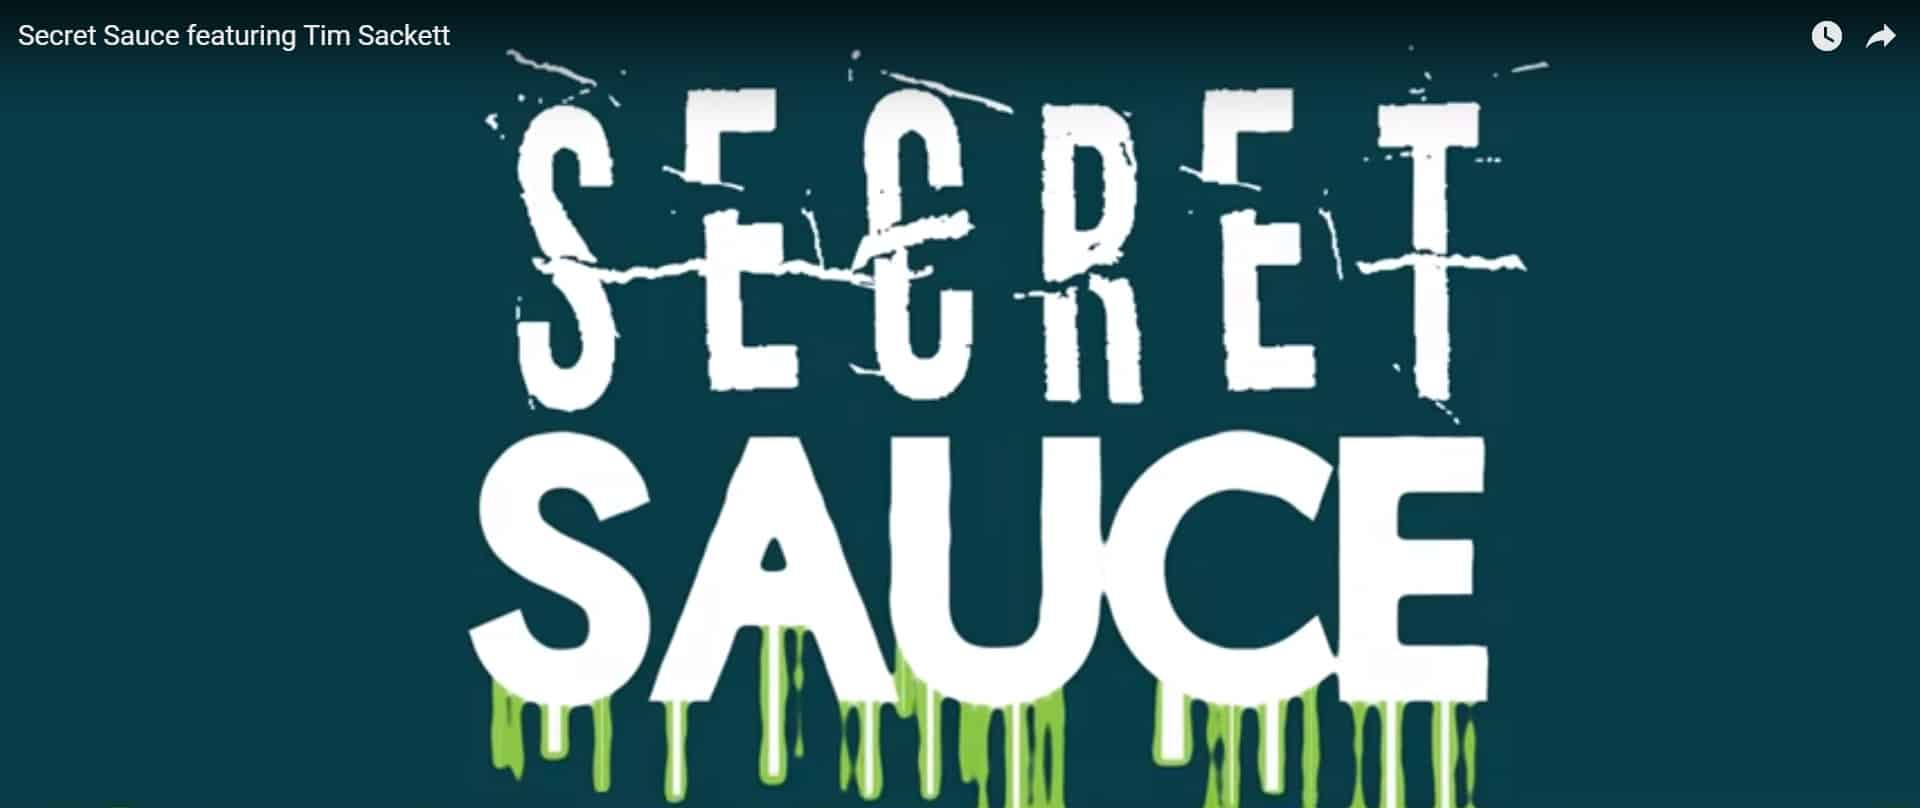 FoT Secret Sauce Blog Header